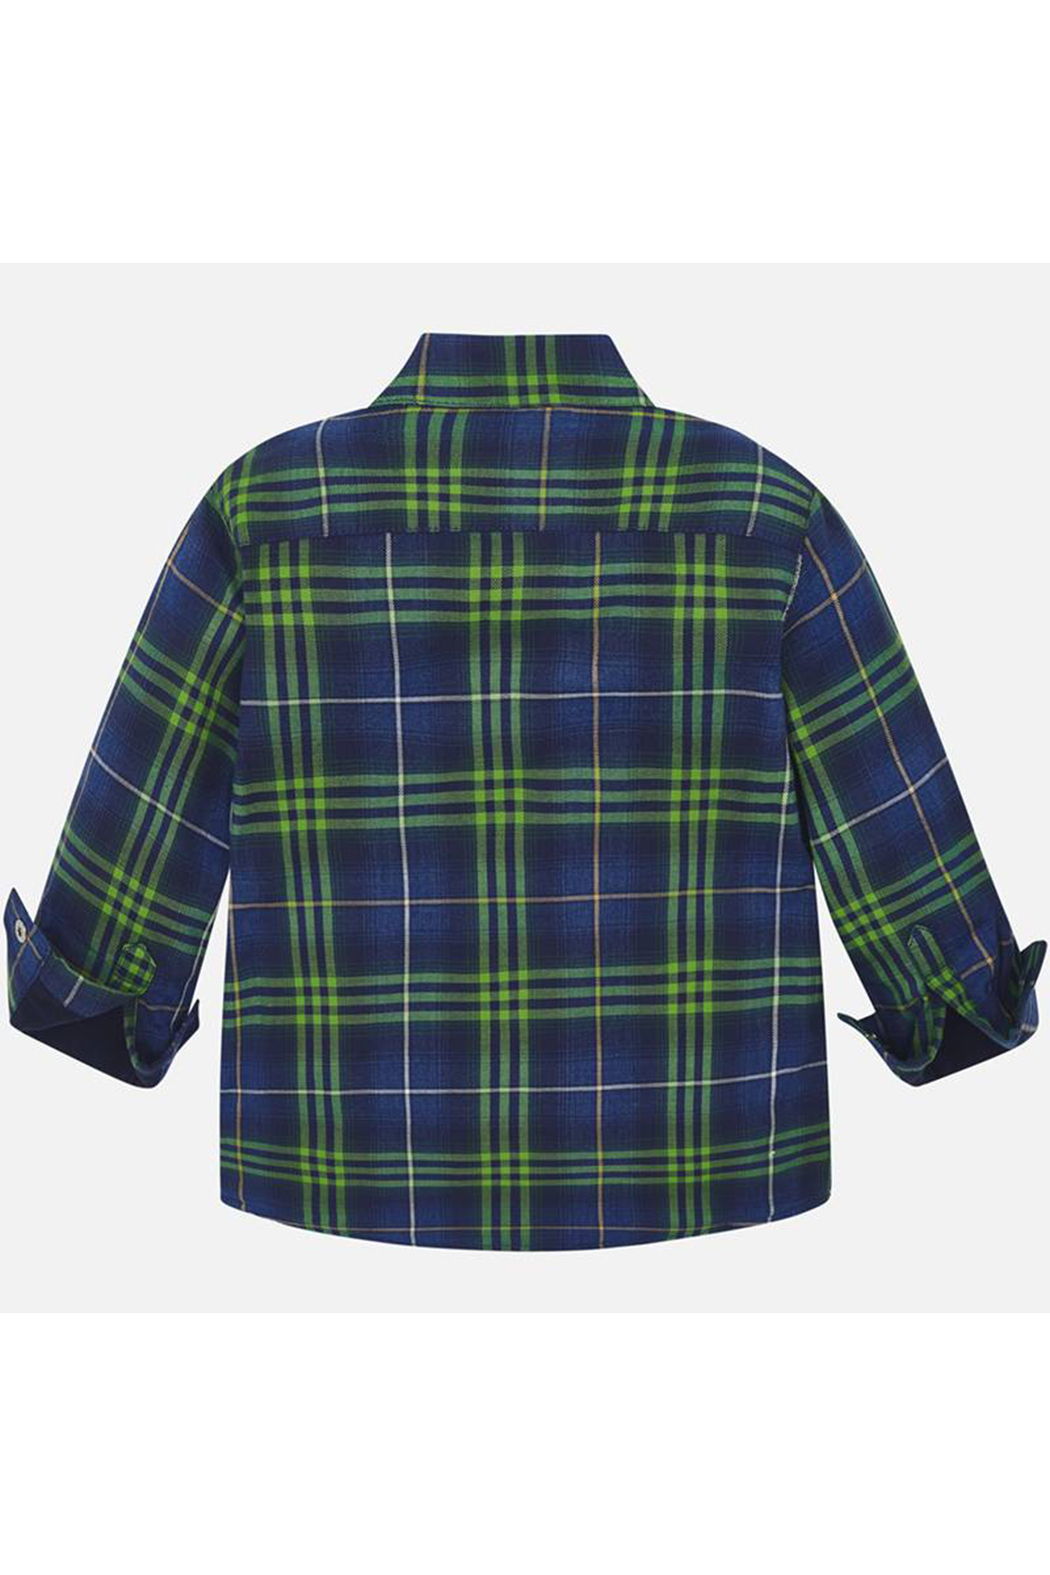 Mayoral Long Sleeve Button Up Plaid - Front Full Image